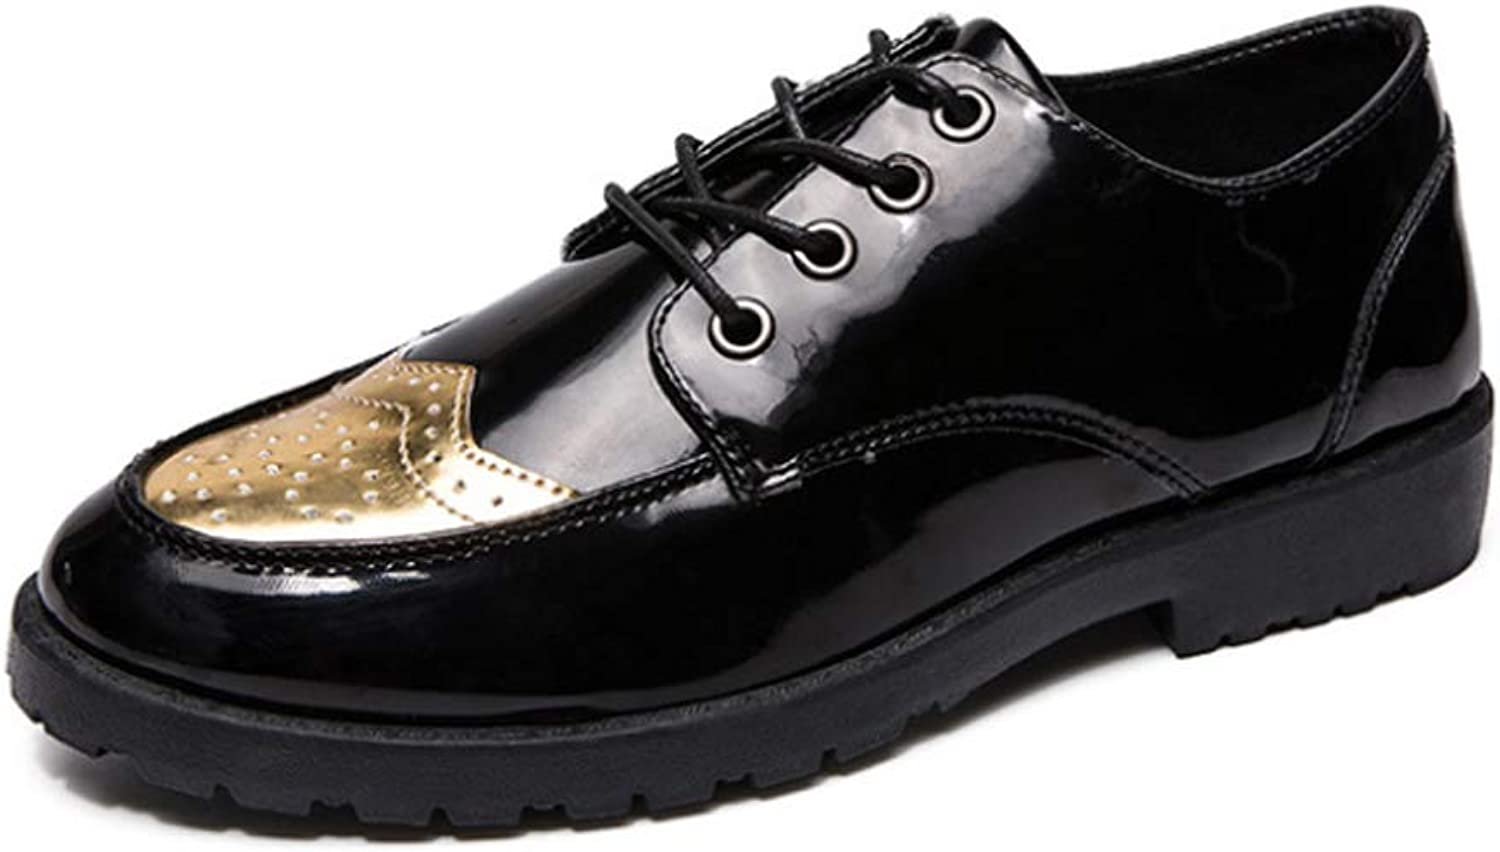 Spring Men's shoes Glossy Casual shoes Round Head Small shoes Hair Stylist Trend Flat shoes Student Youth shoes